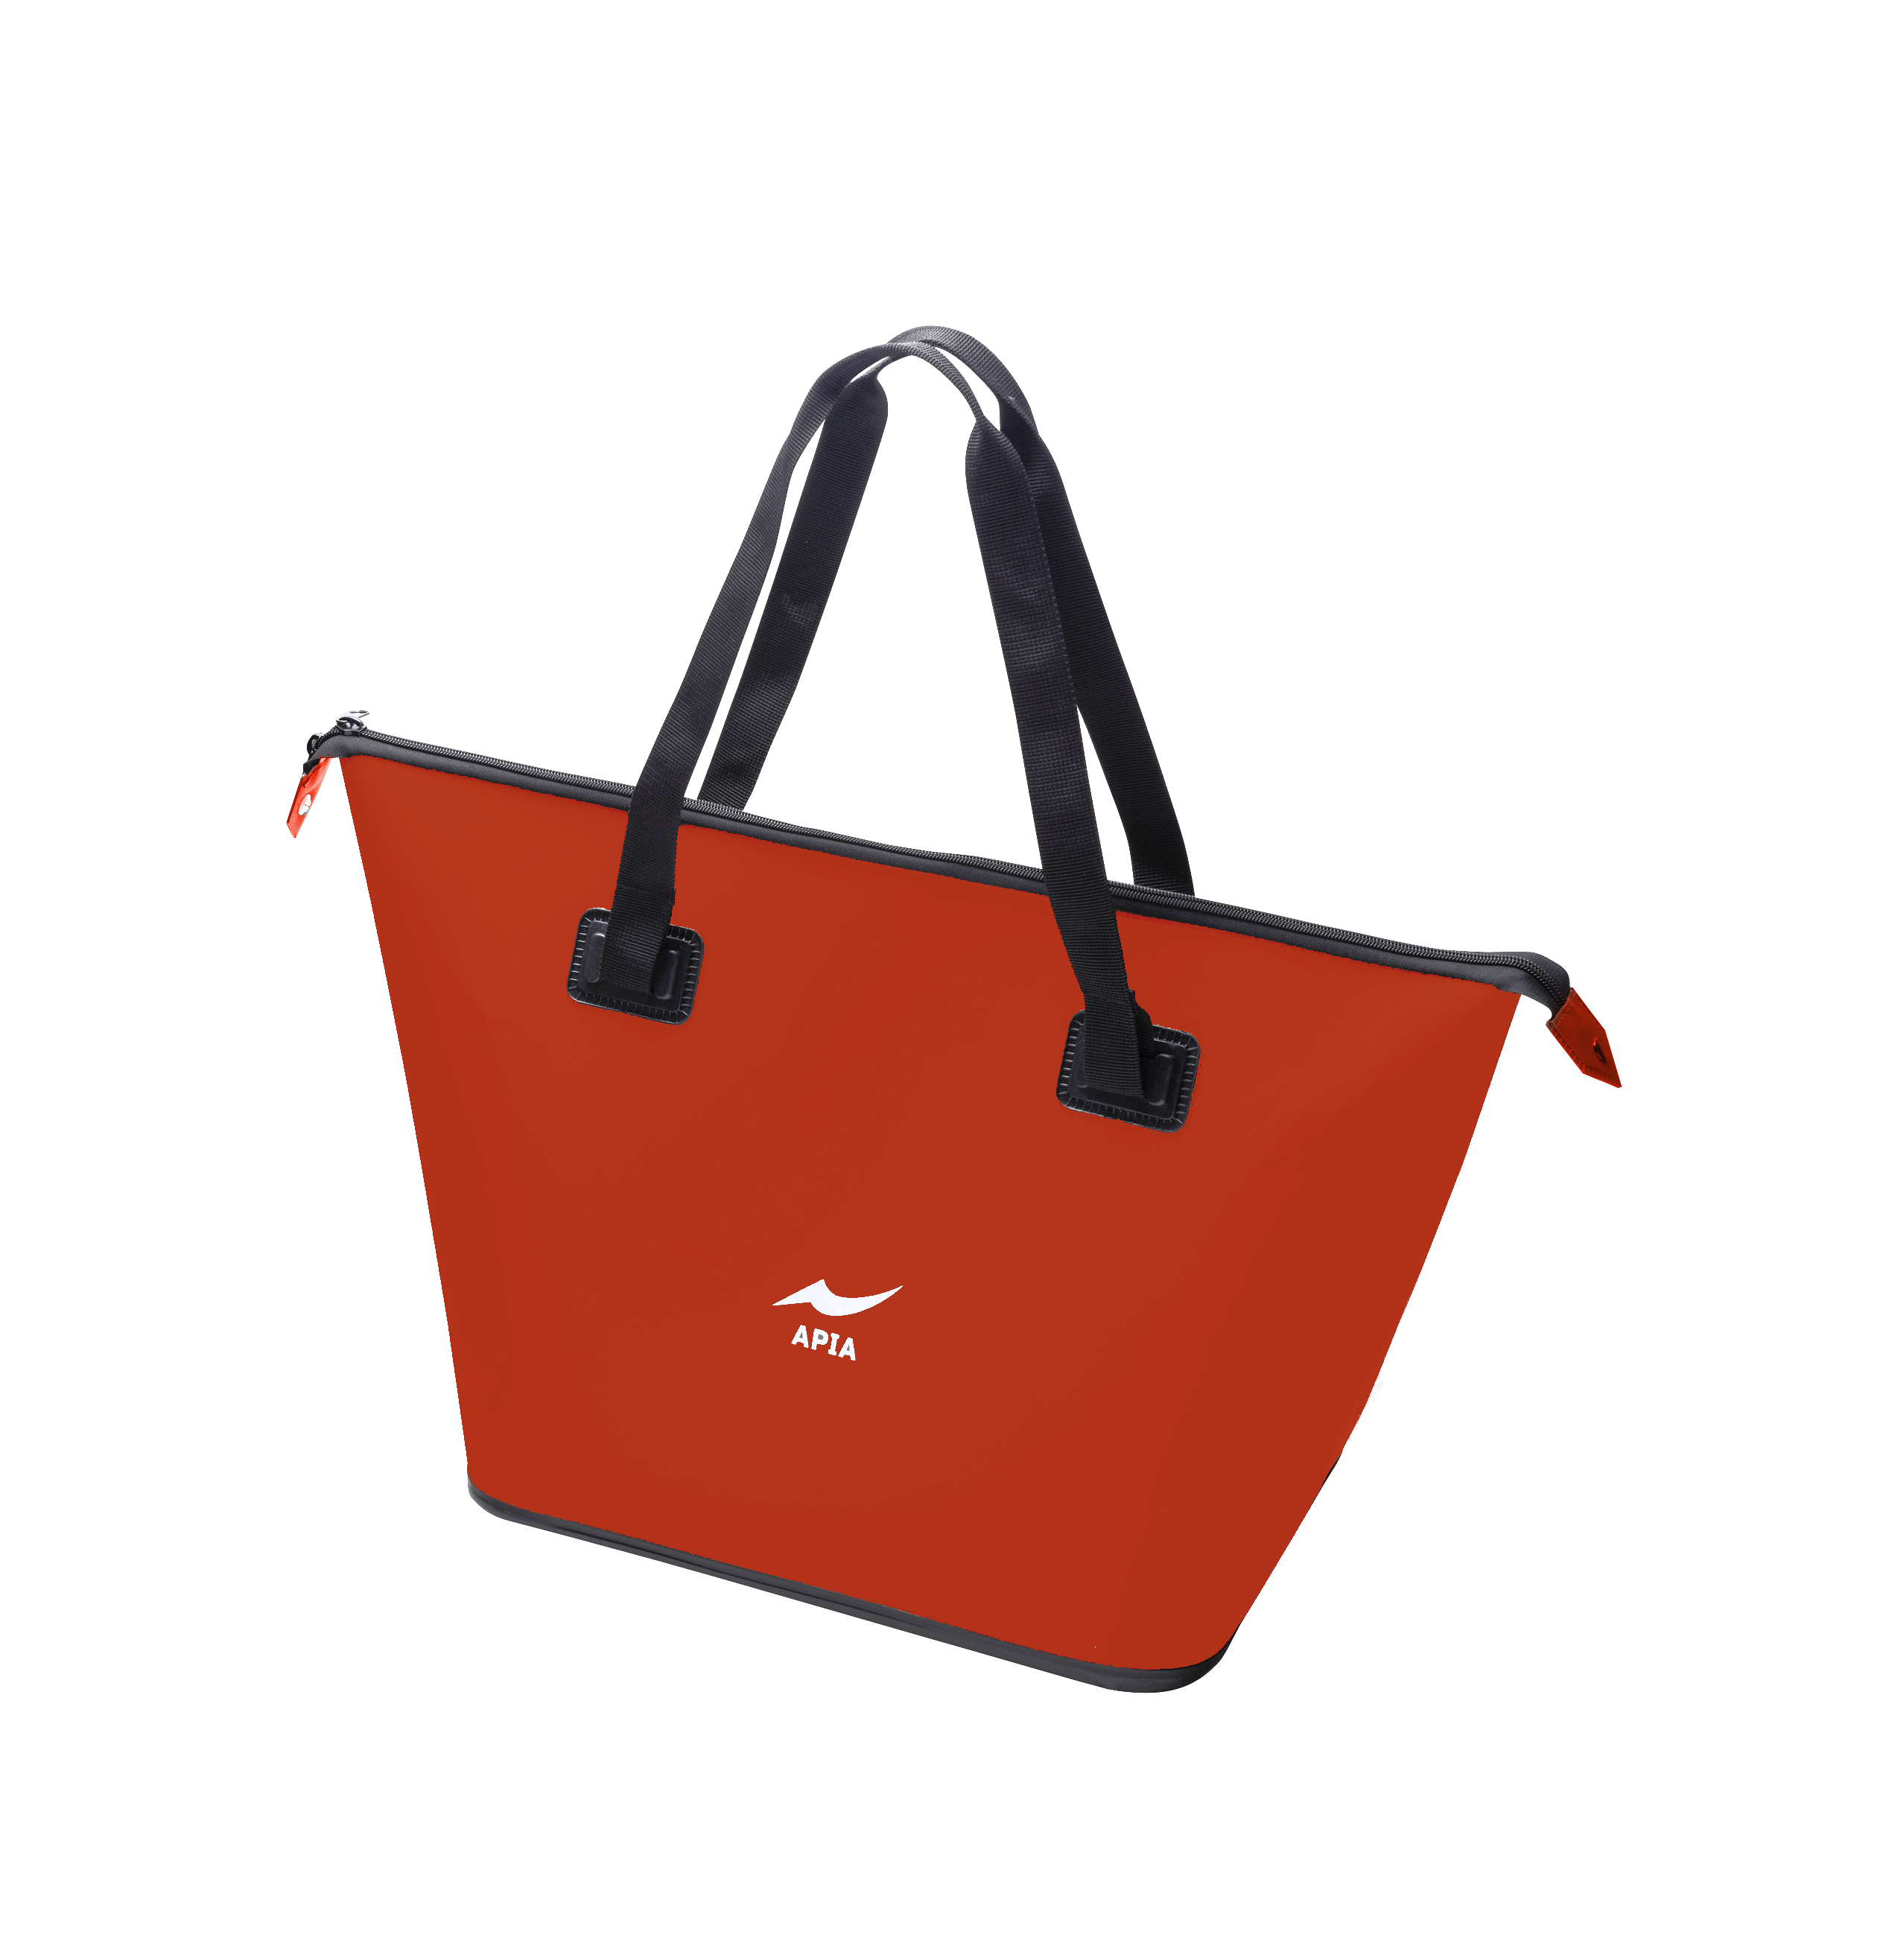 Apia EVA Tote Bag Red Size M 430 x 280 x 380 mm (6920)